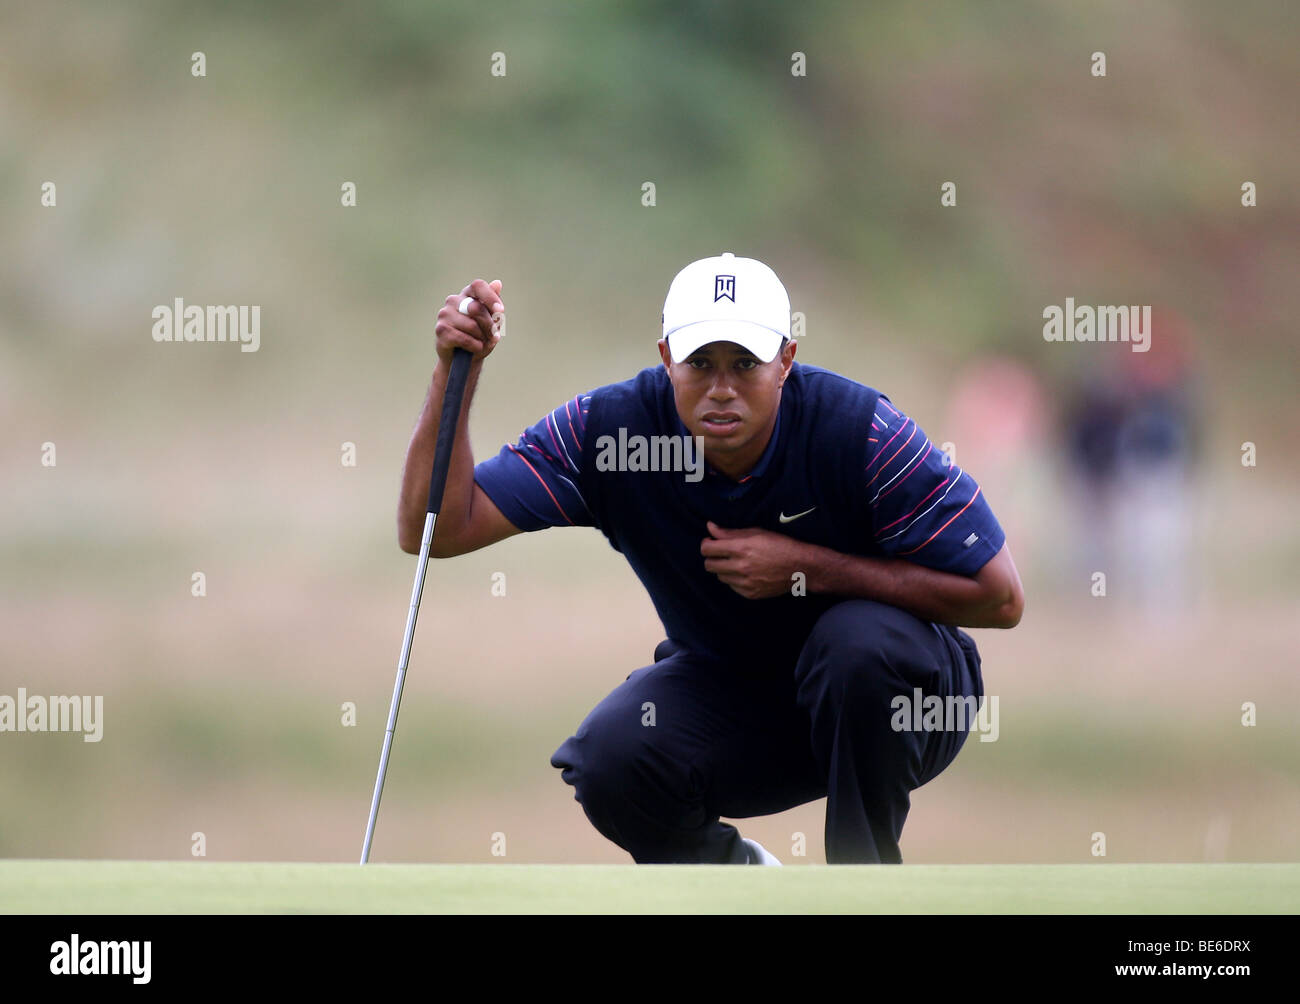 TIGER WOODS LINES UP PUTT THE OPEN TURNBERRY 2009 TURNBERRY AYR SCOTLAND 16 July 2009 - Stock Image